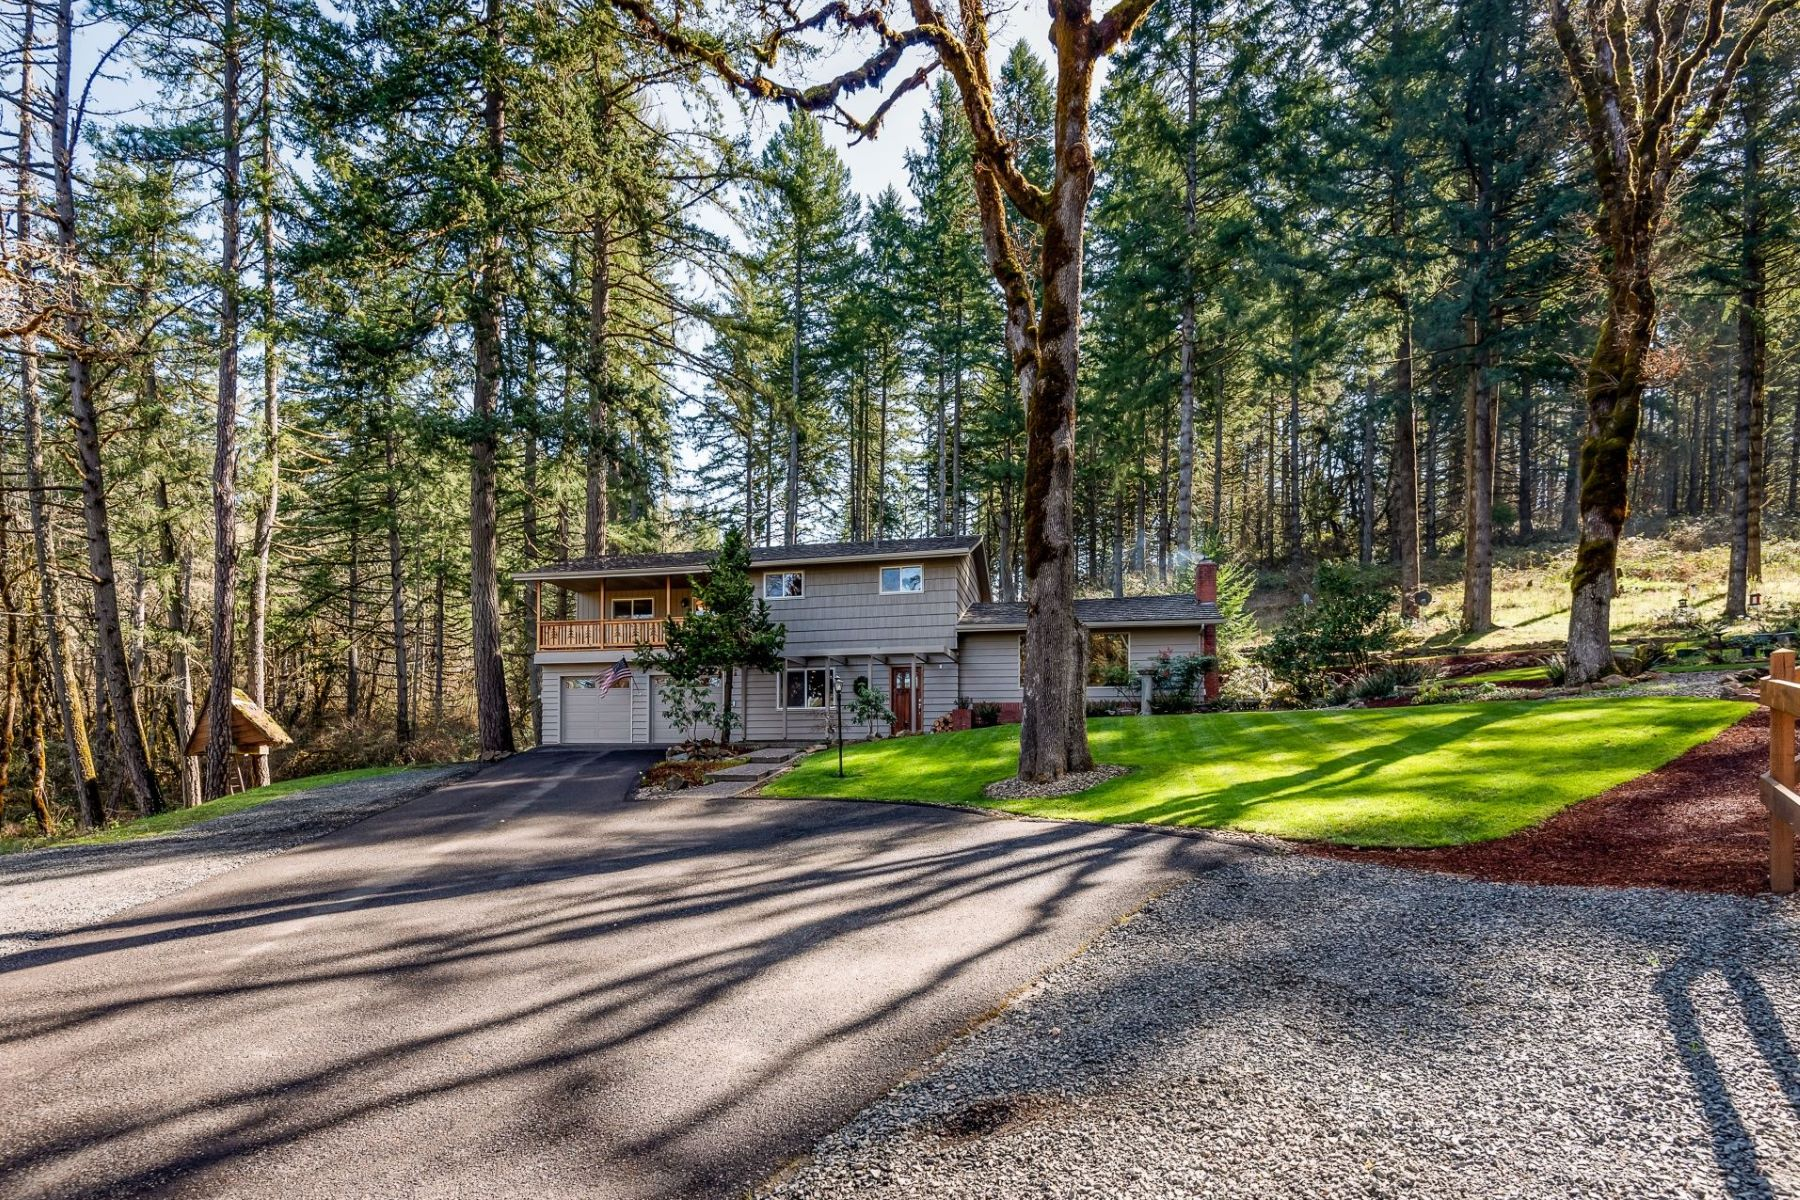 Other Residential Homes for Active at 86299 LORANE HWY Eugene, OR 97405 86299 LORANE HWY Eugene, Oregon 97405 United States